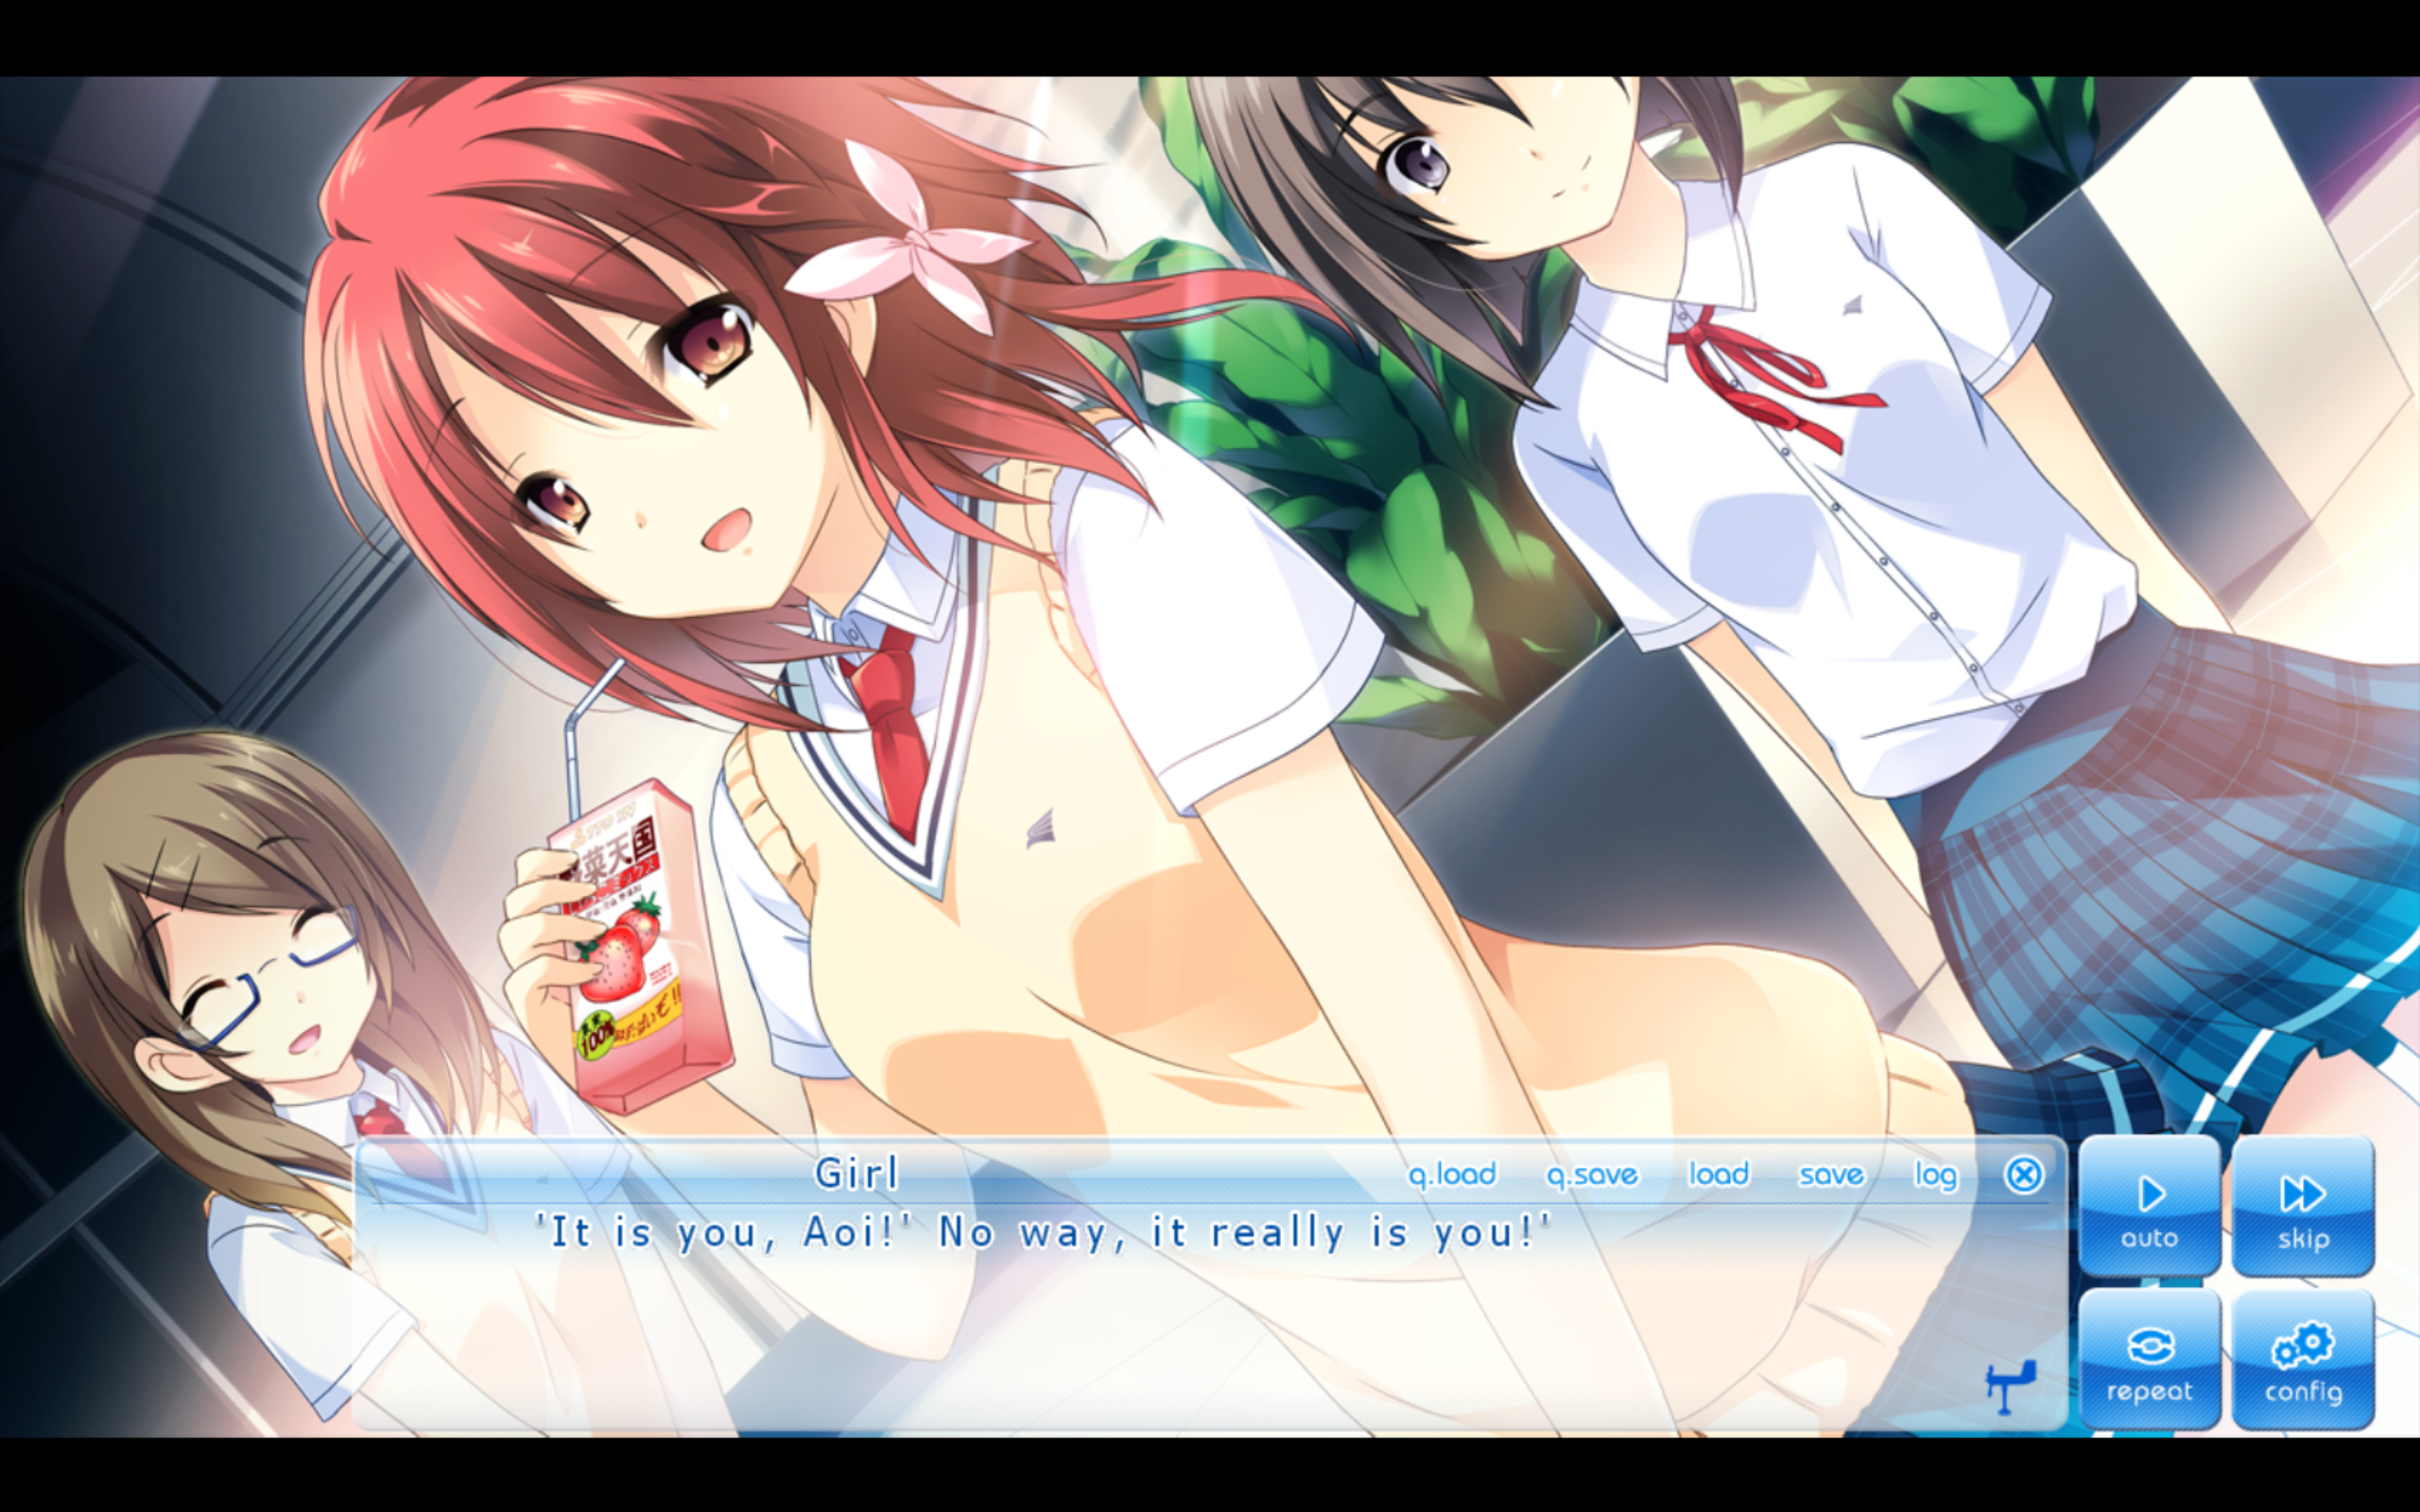 If My Heart Had Wings Ageha S Route The Tiny World Of An Anime